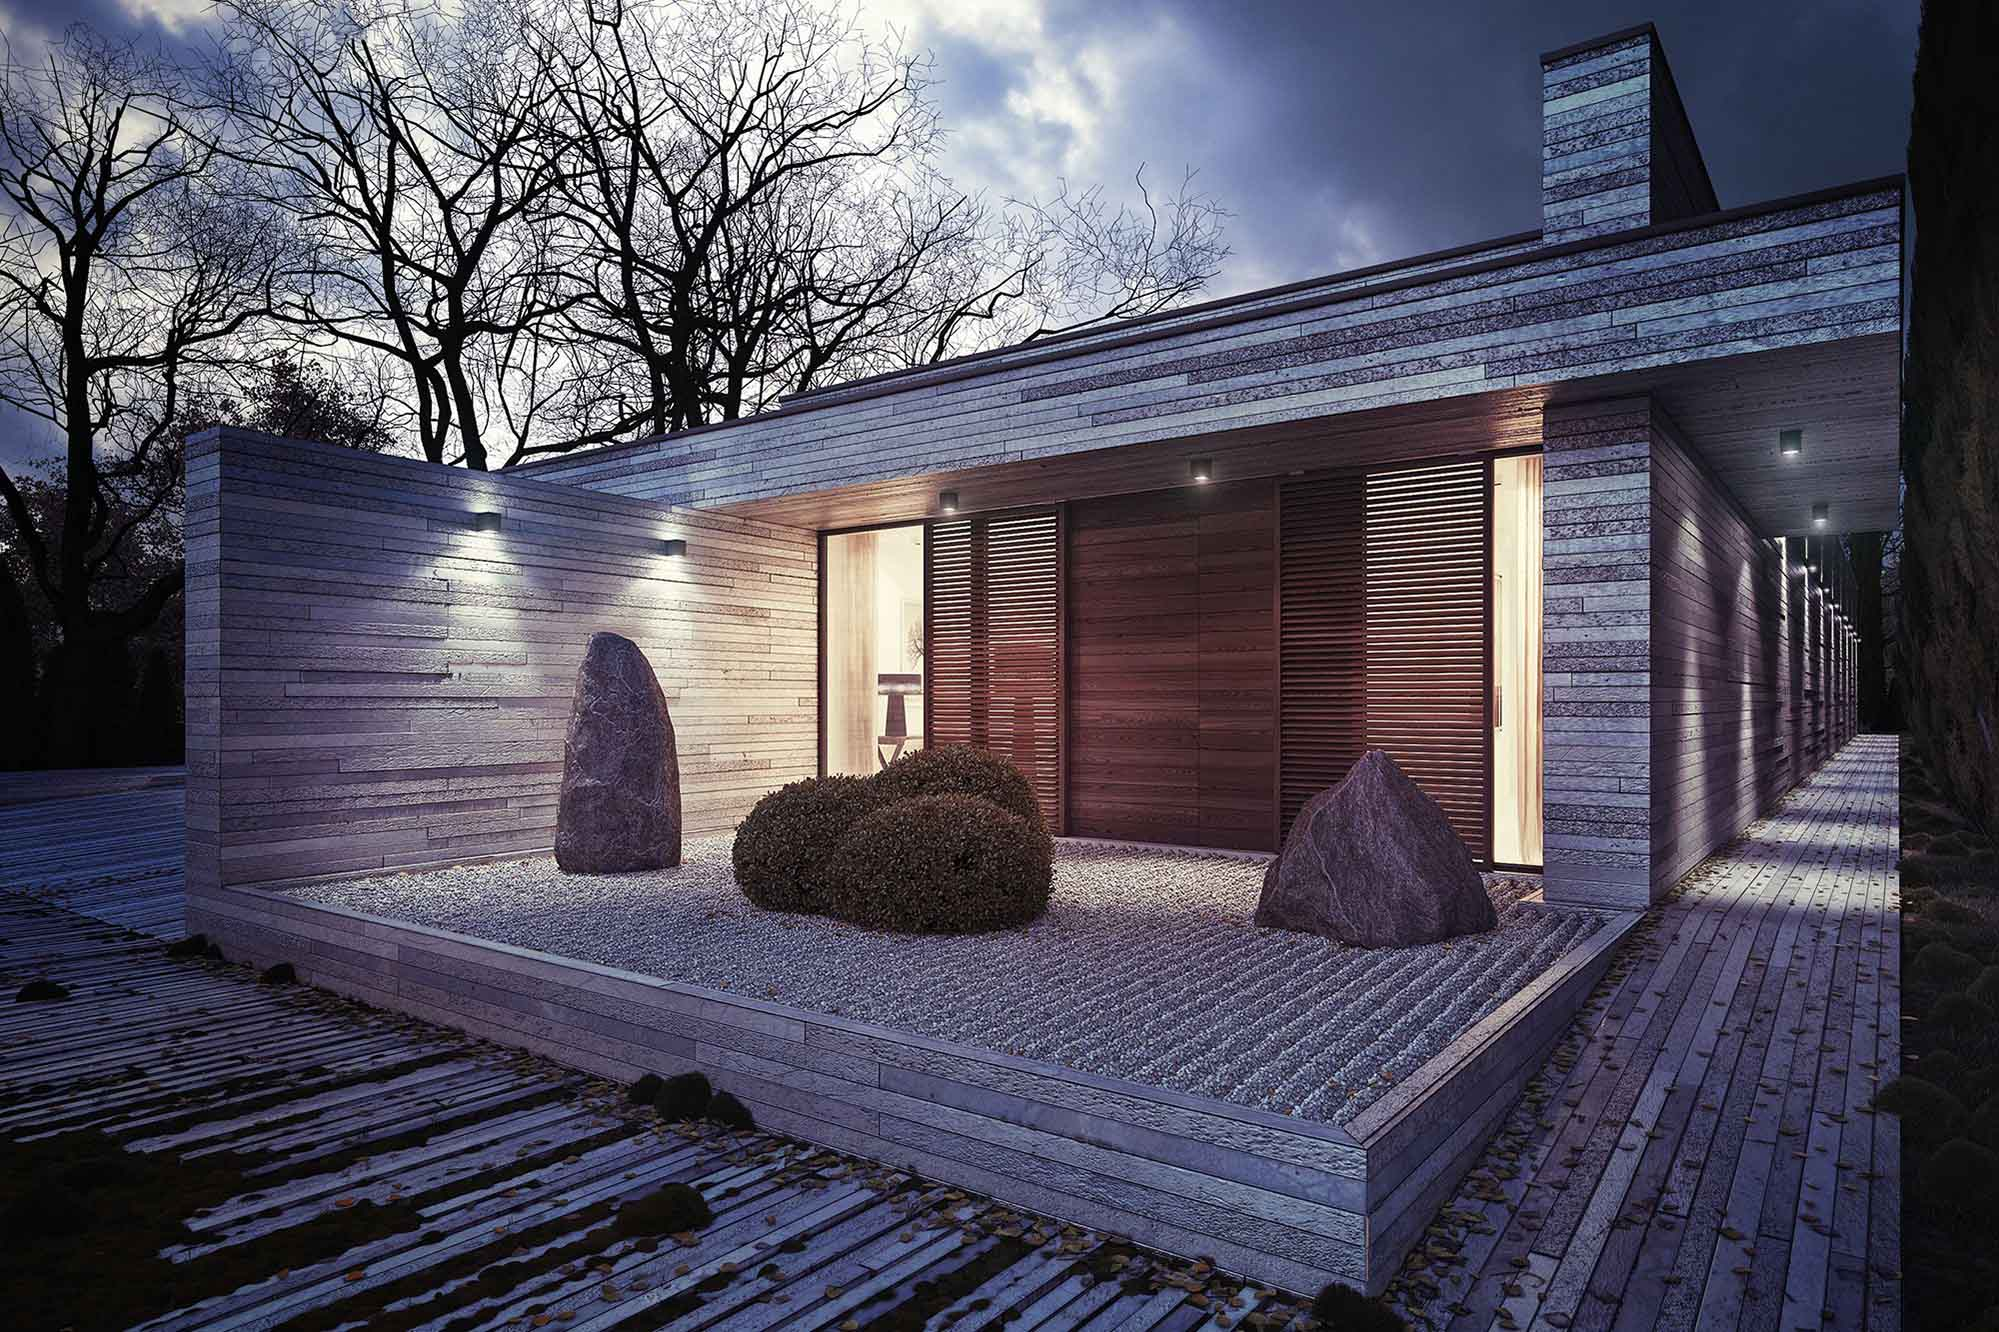 Horizontal_house_06_81.waw.pl-300dpi